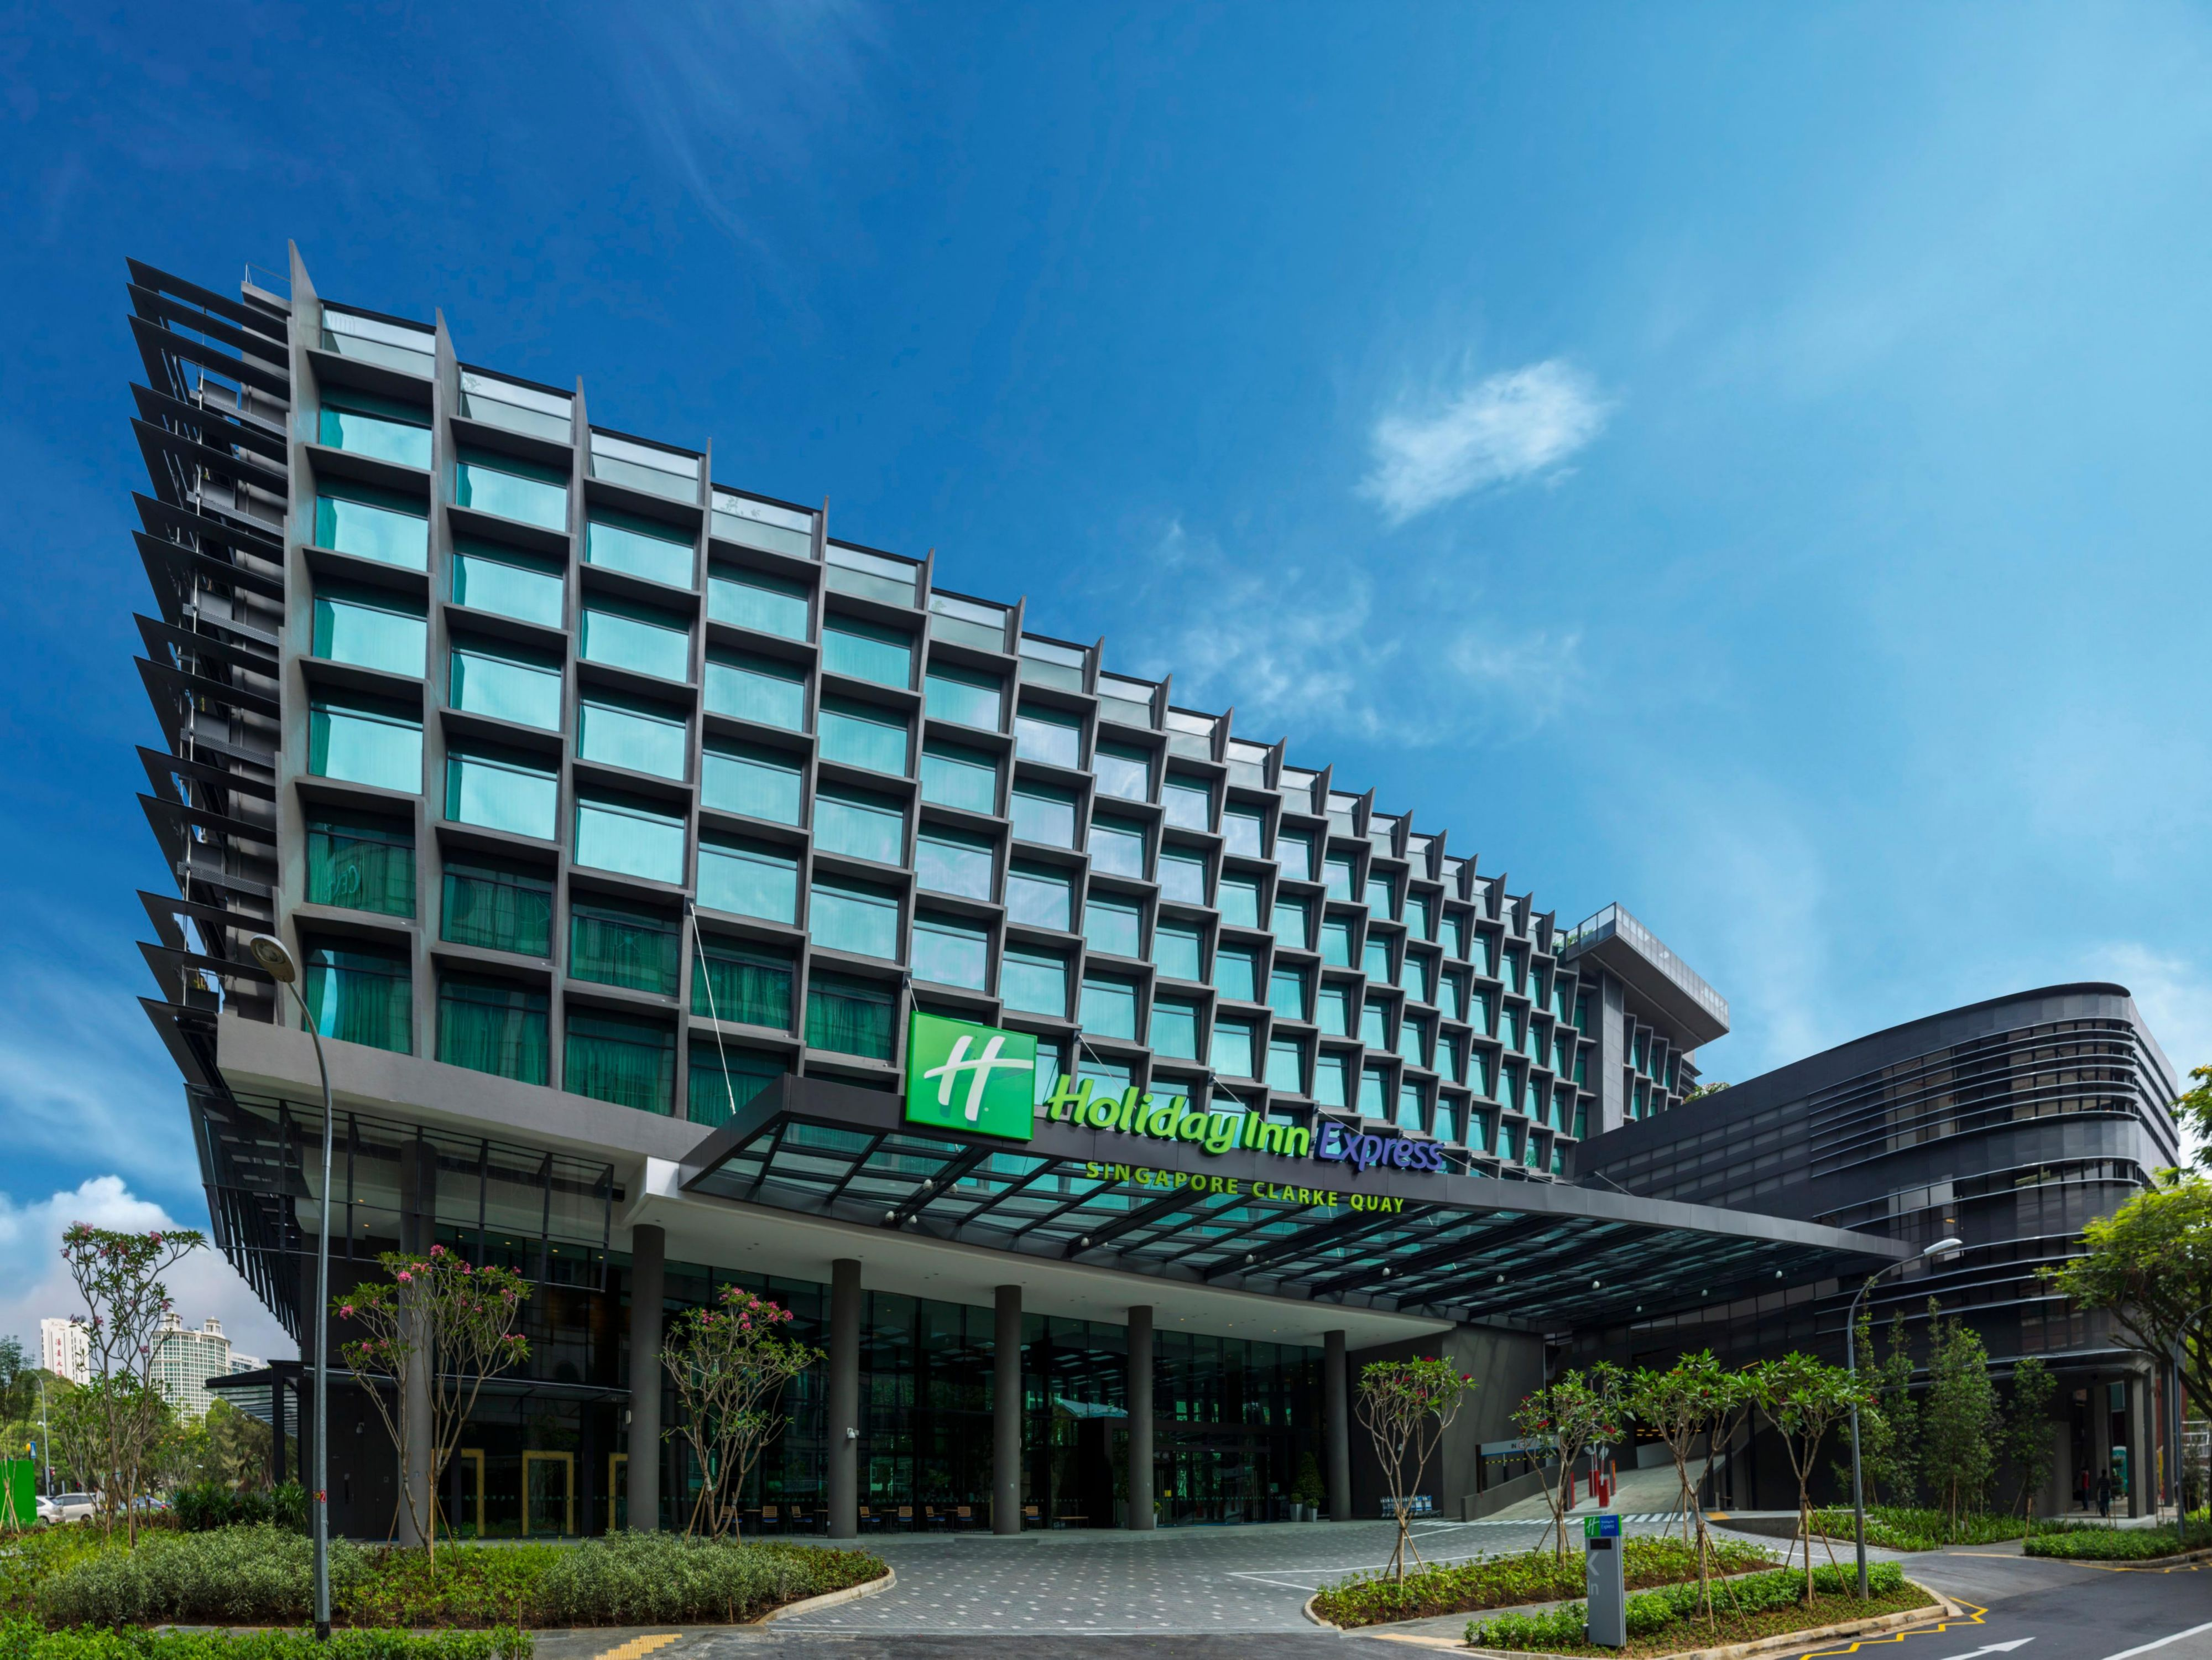 Holiday Inn Express Singapore Clarke Quay Hotel Exterior